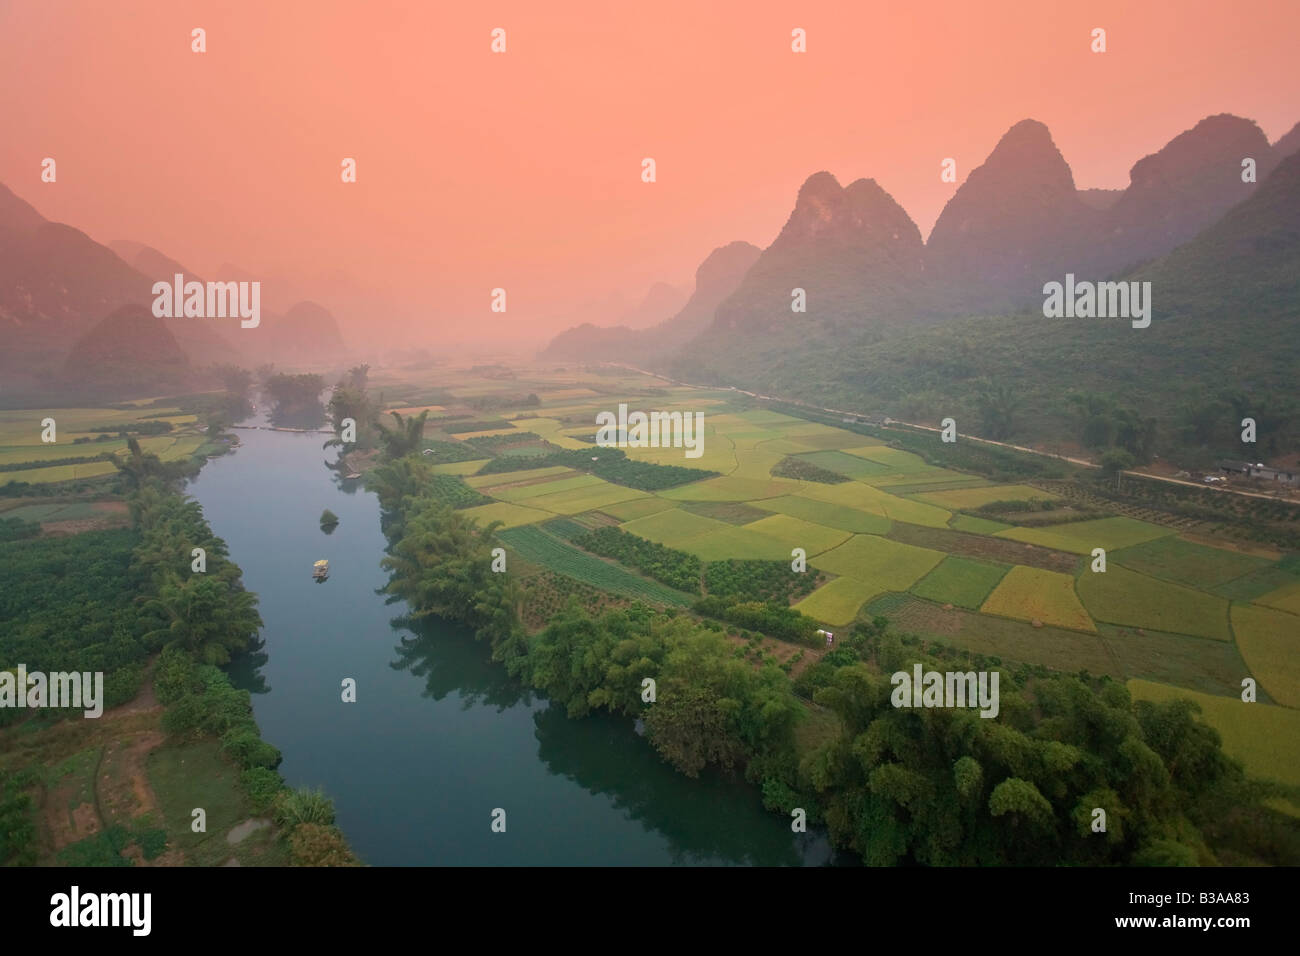 Karst Mountain Landscape & Li River from hot air balloon, Yangshuo, Guilin, Guangxi Province, China Stock Foto